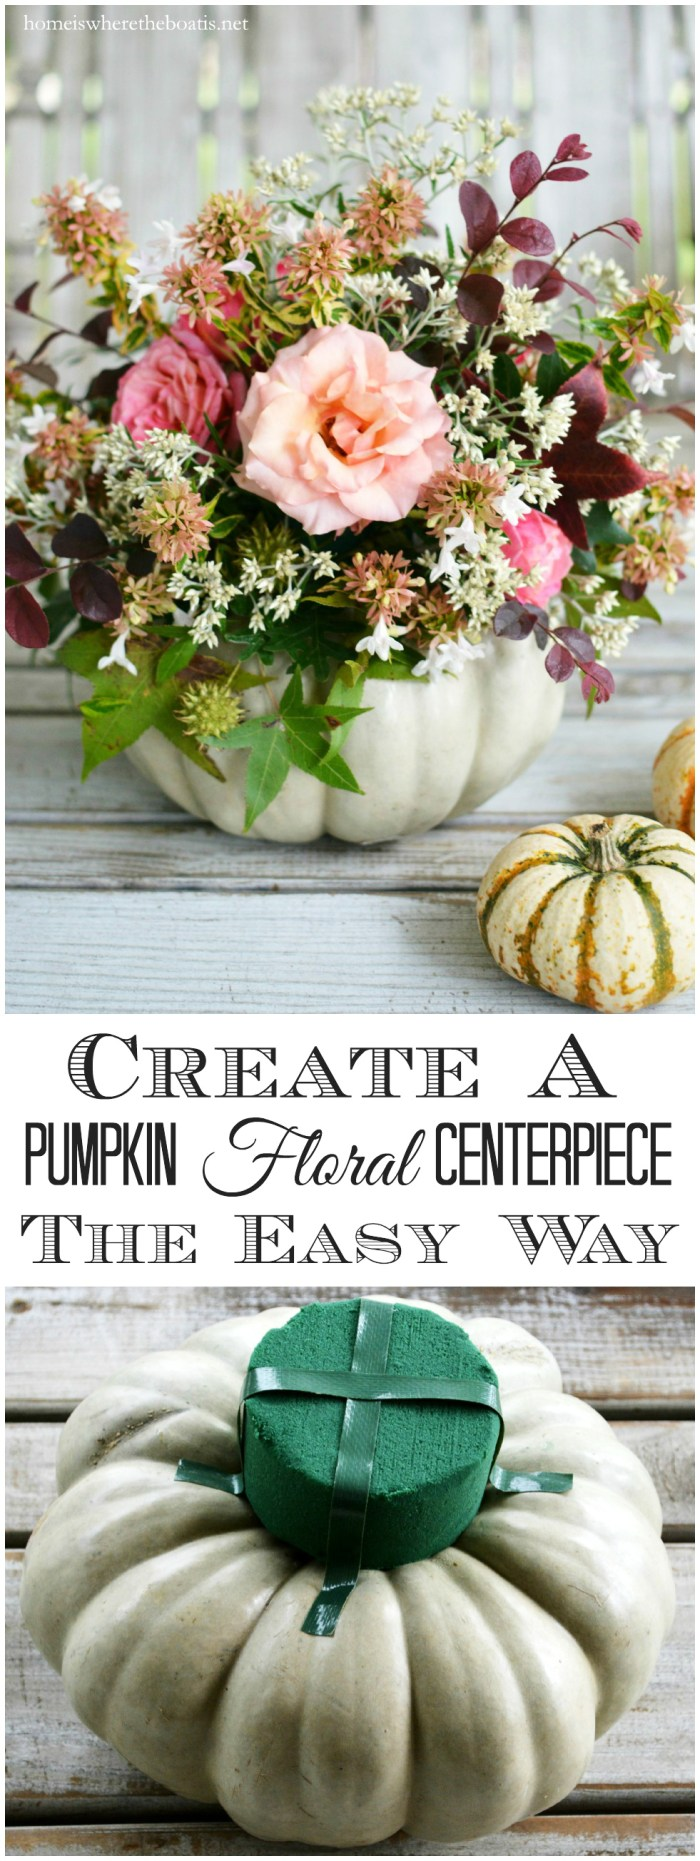 Create a Pumpkin Floral Centerpiece the easy way, no carving required! | ©homeiswheretheboatis.net